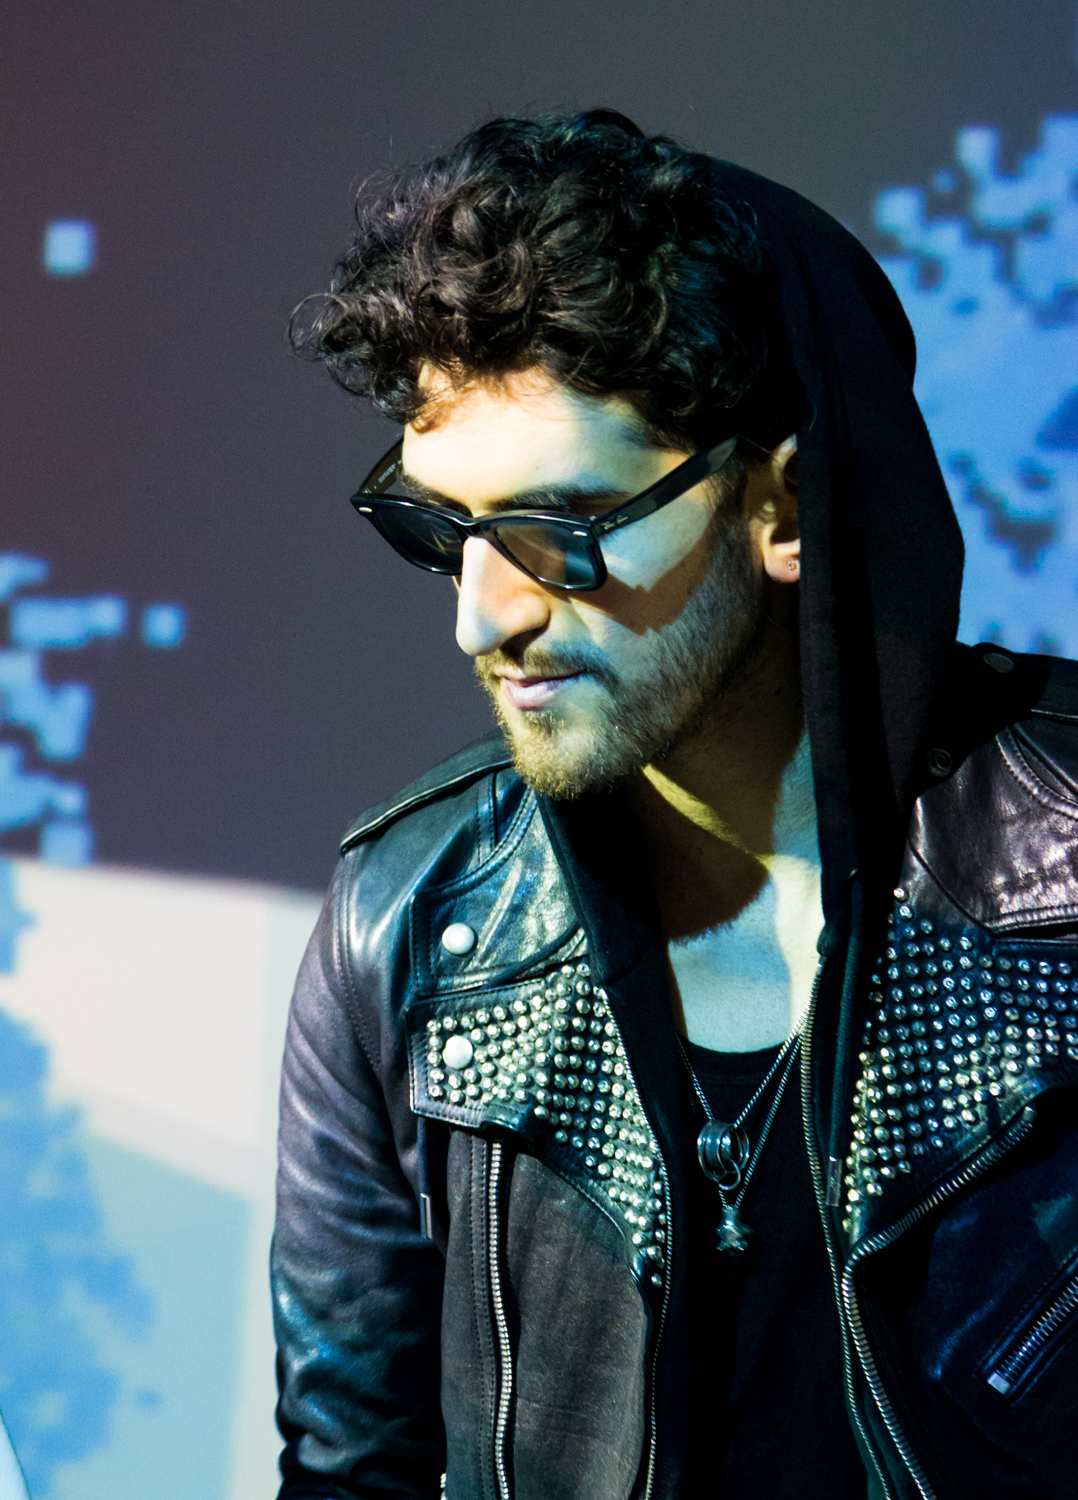 Chromeo performs at the Spotify House @SXSW2016 photo: Anna Webber/Gettyimages for Spotify